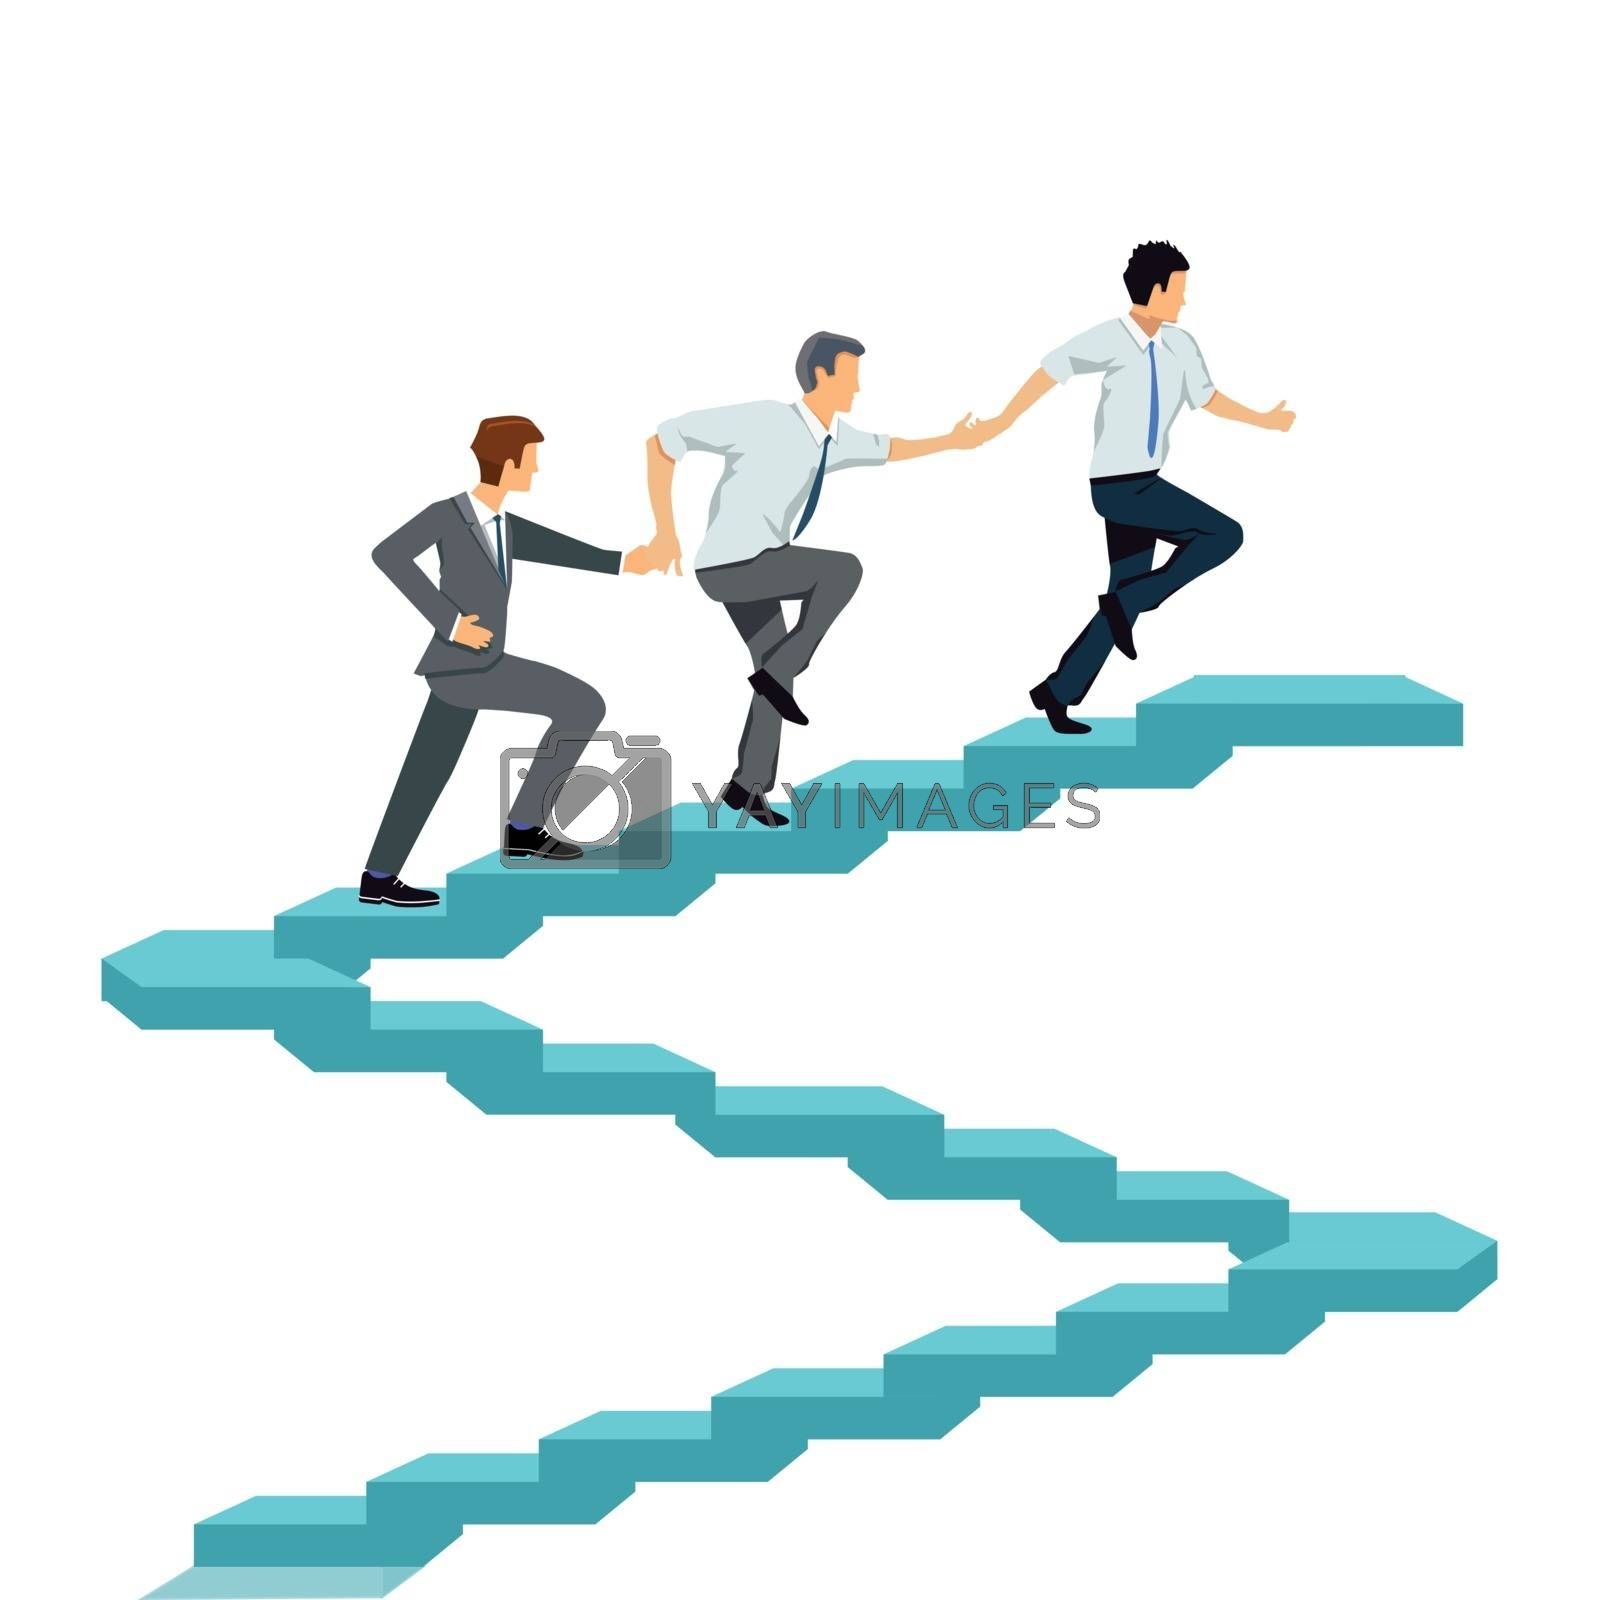 Royalty free image of Successfully climb up together, teamwork illustration by scusi